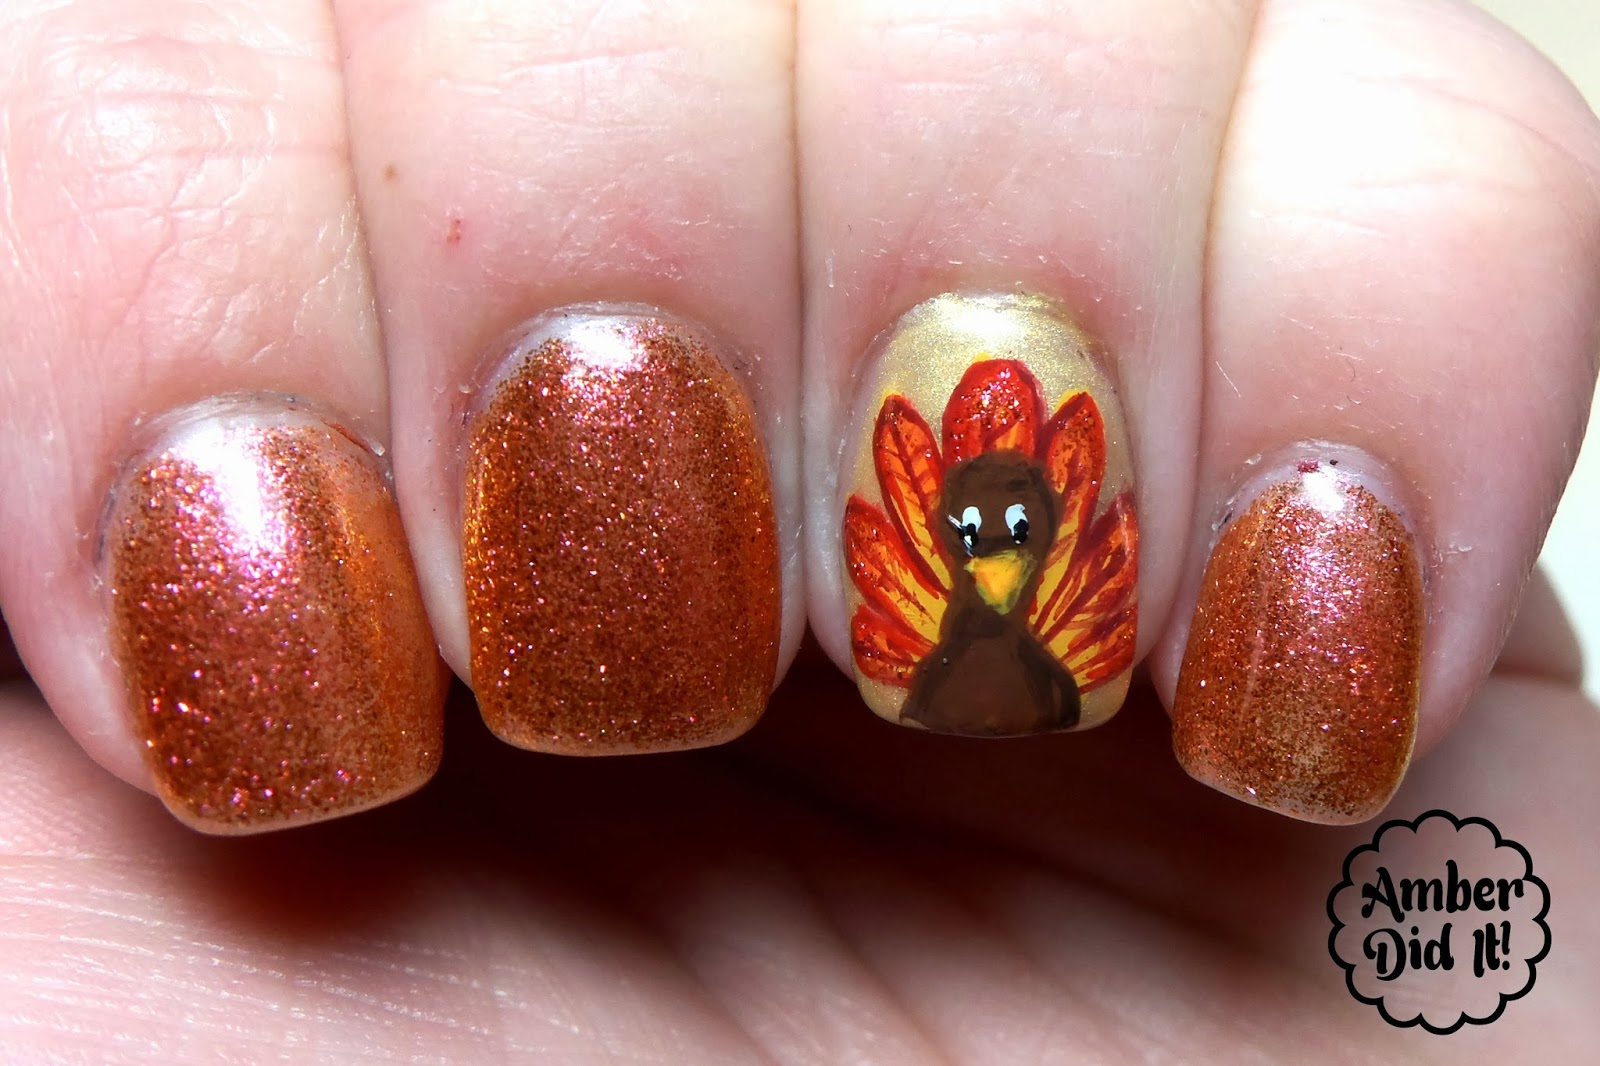 Acrylic nail designs for thanksgiving beautify themselves with acrylic nail designs for thanksgiving amber did it magnificent mani monday thanksgiving edition prinsesfo Image collections